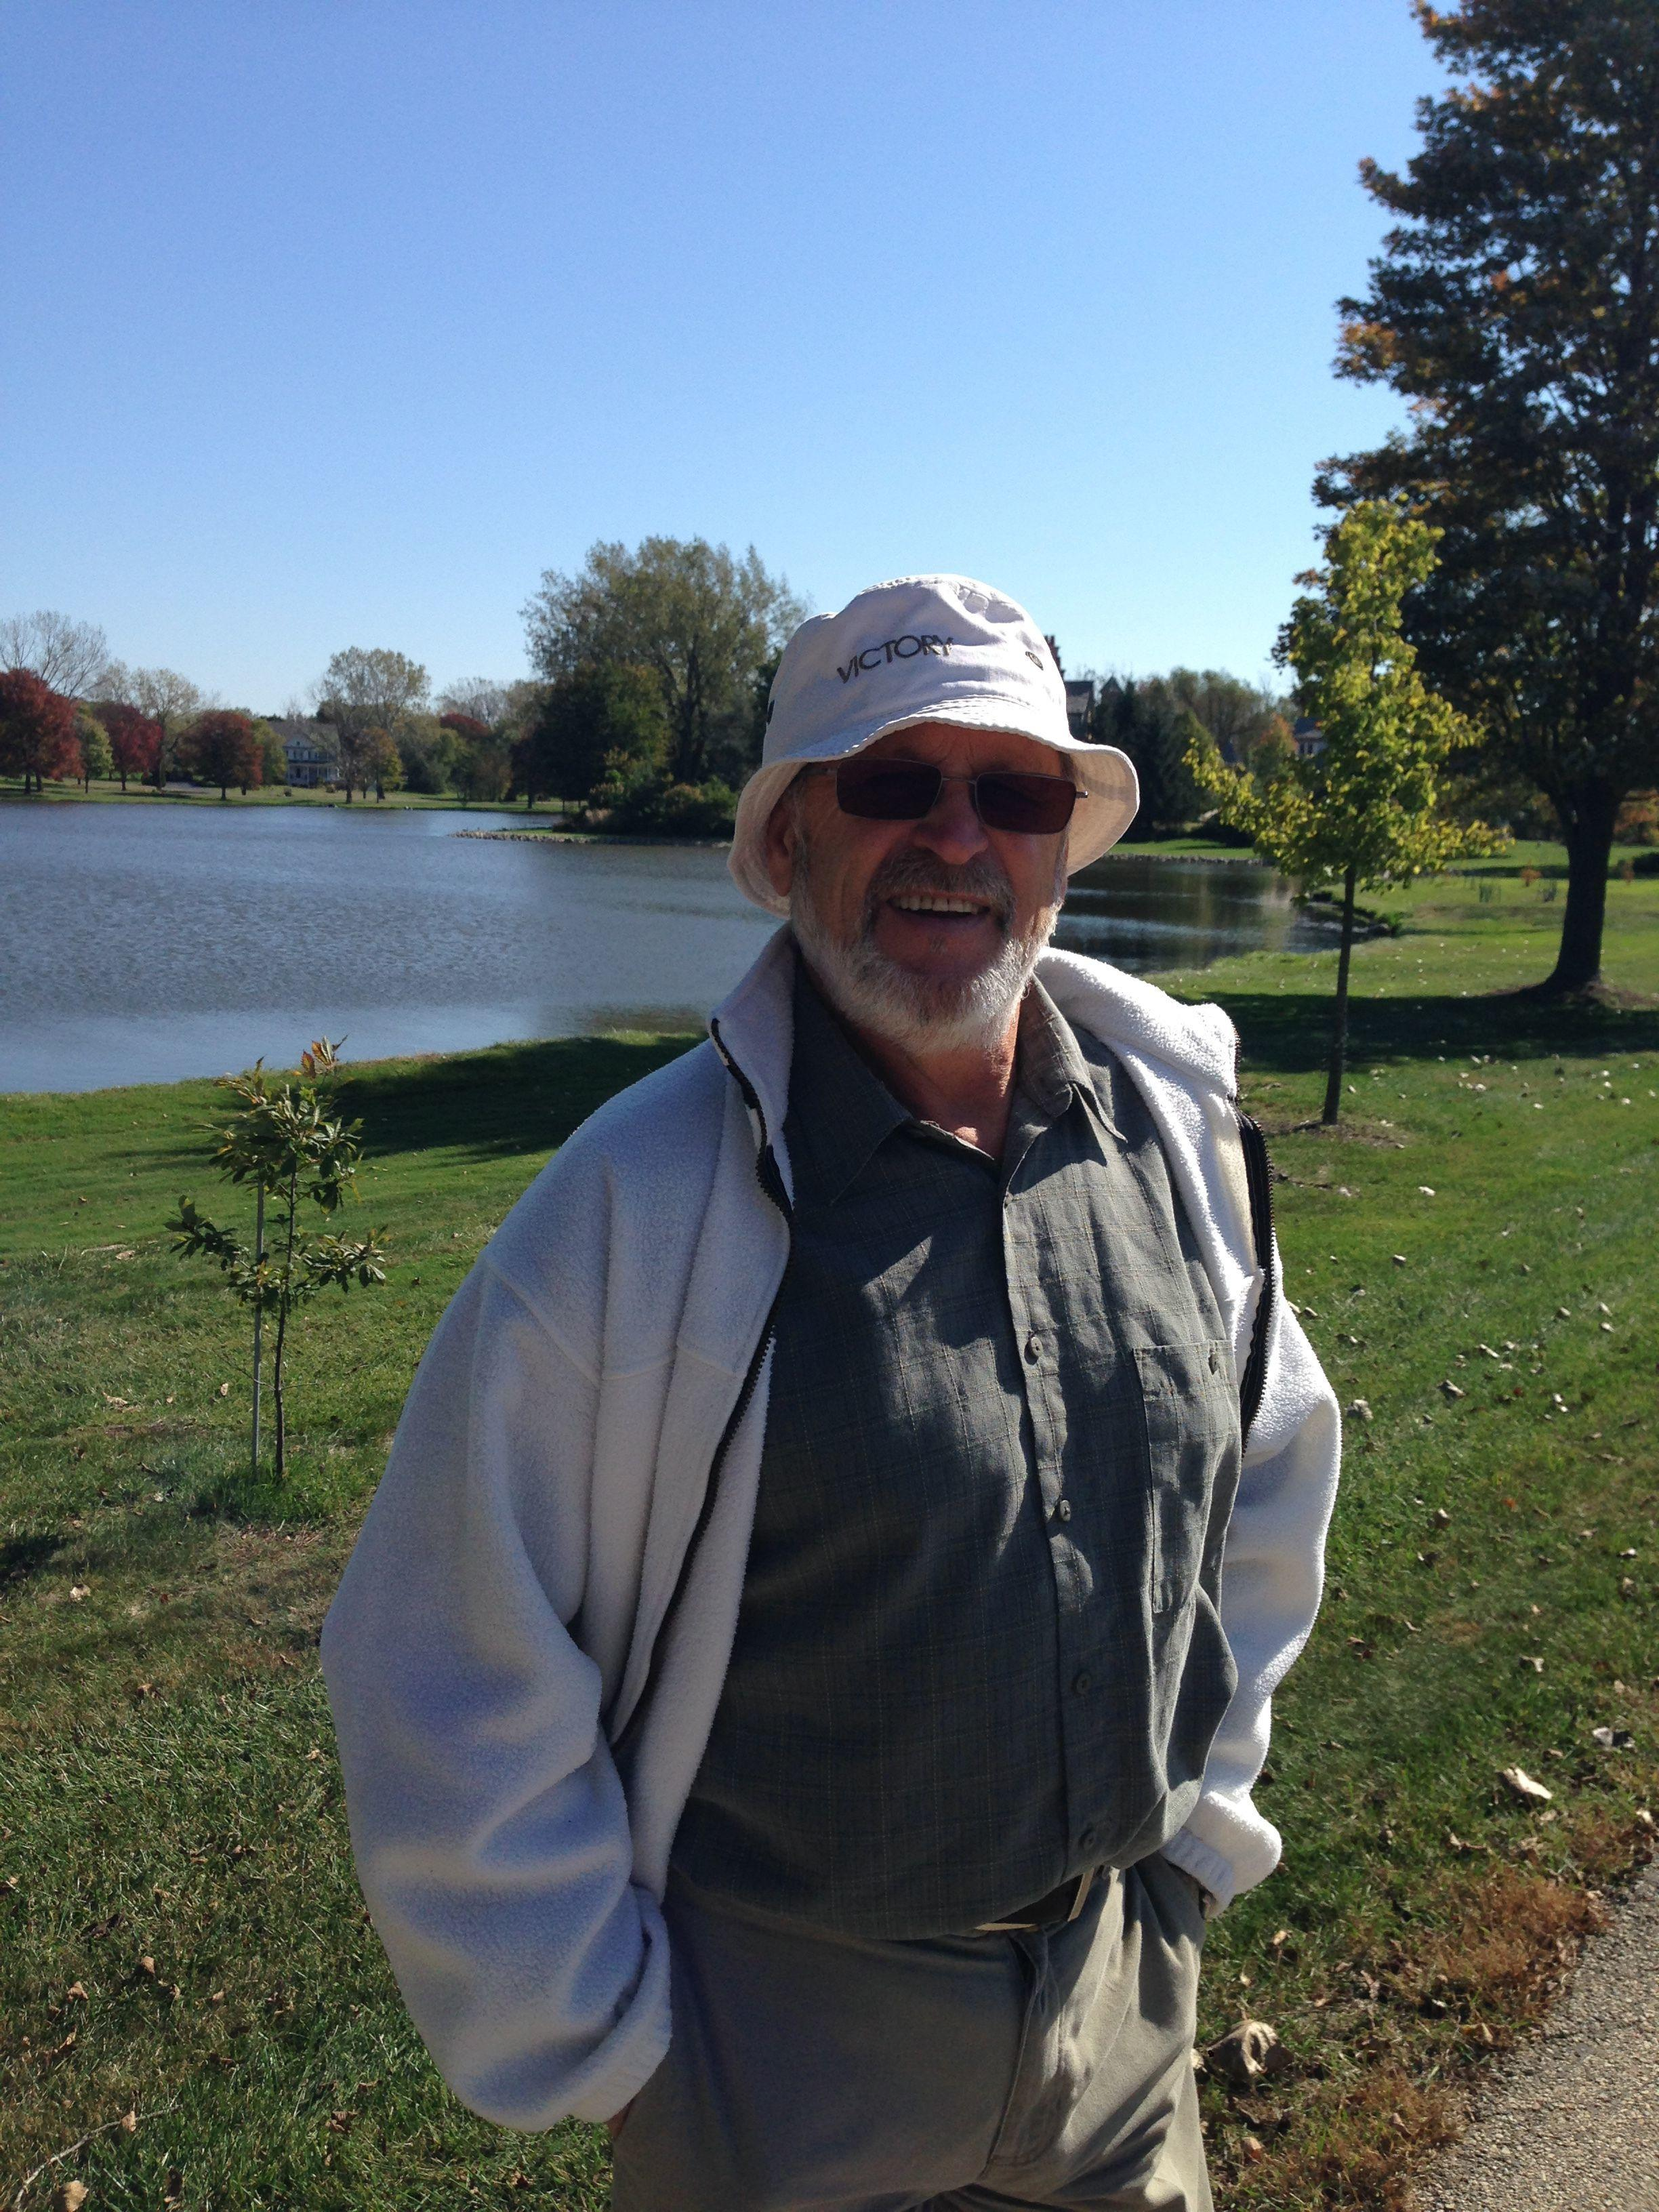 meet mark singles We are over 45 singles with a variety of interests we are active and enjoy going out, making new friends and having a social life.